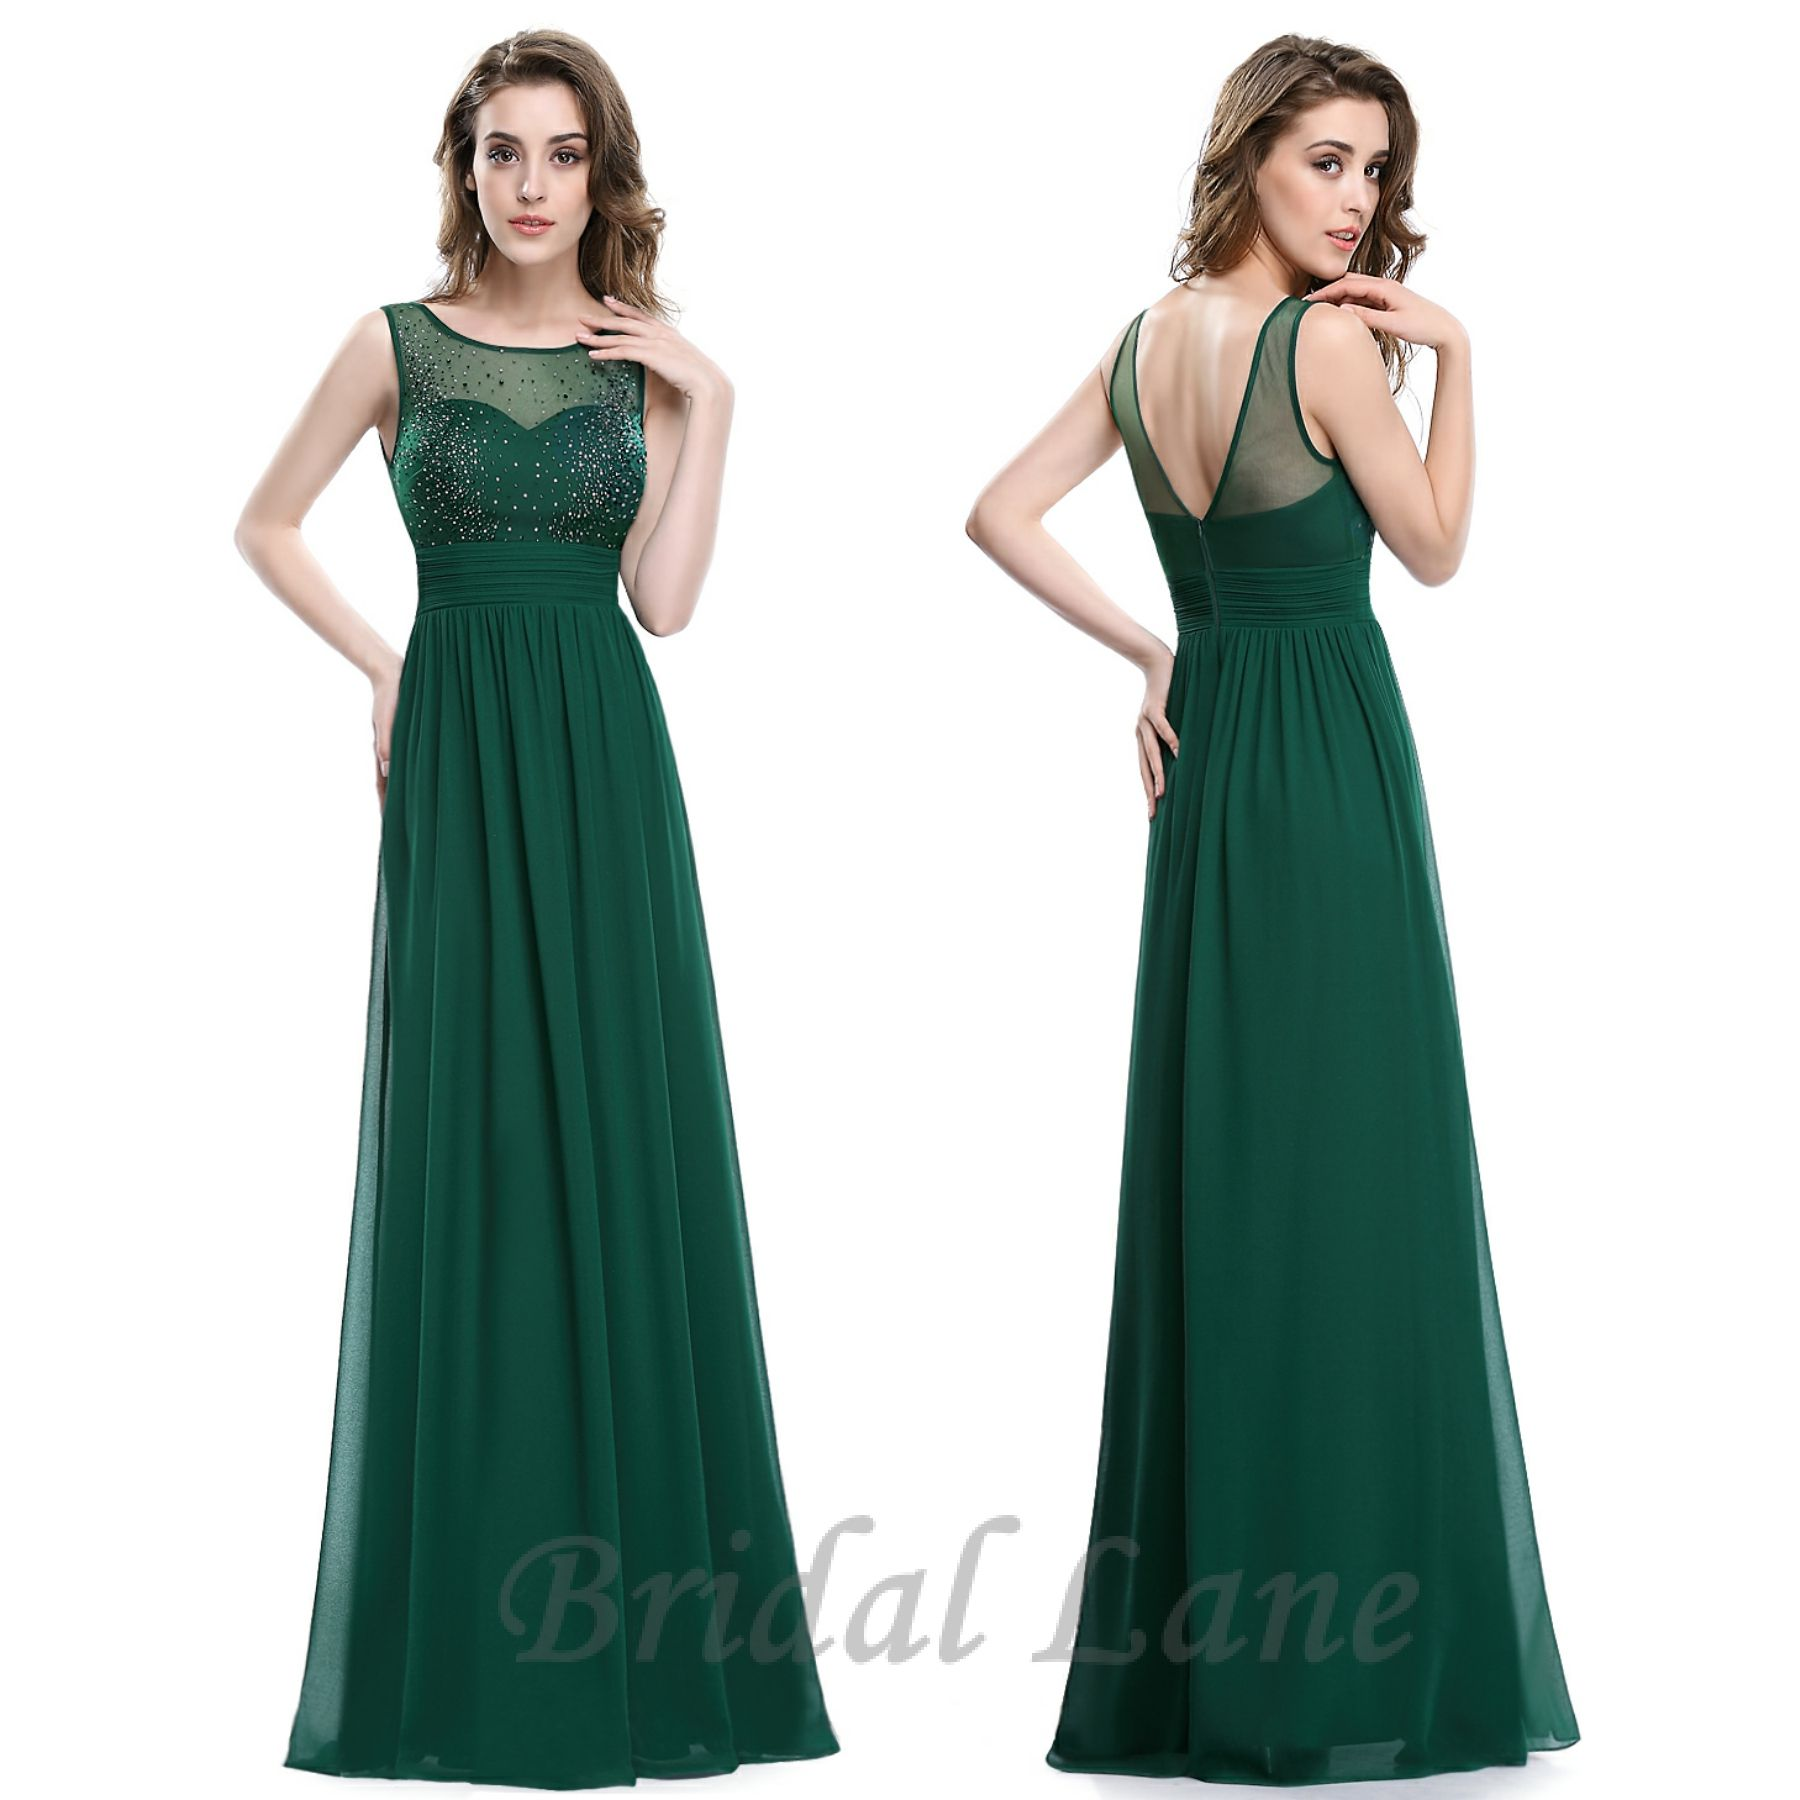 aliexpress buy popular beauty Evening dresses for matric ball / matric farewell in Cape ...